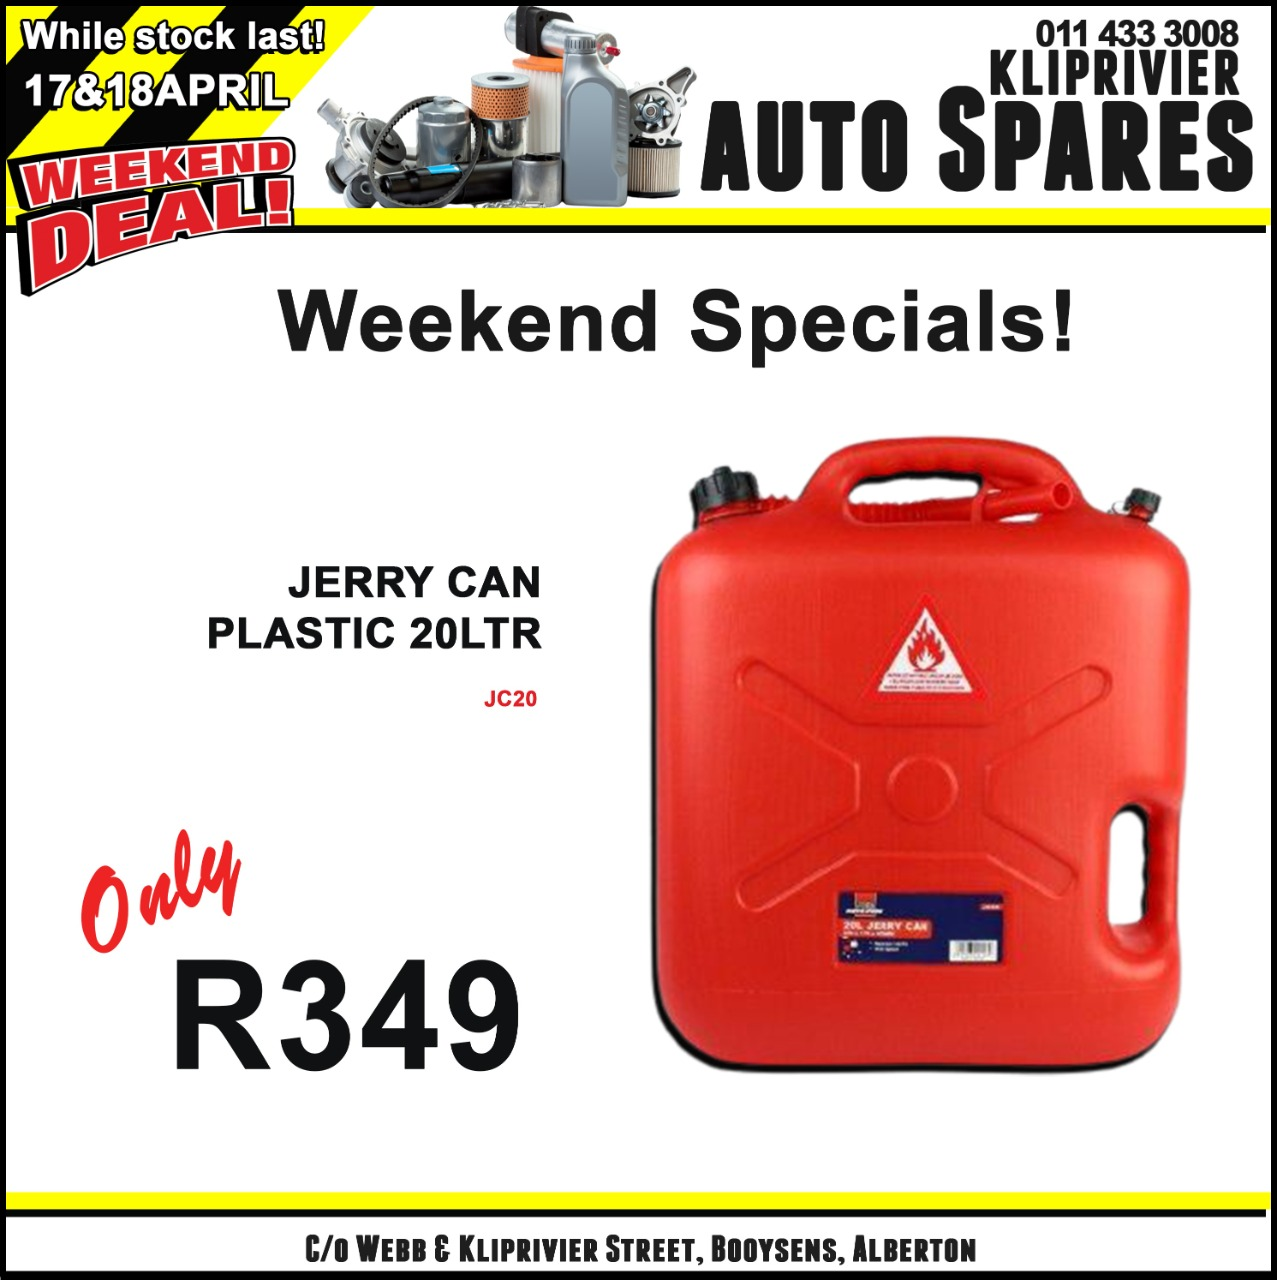 Jerry Can Plastic 20 Liter ONLY at Kliprivier AUTO Spares!